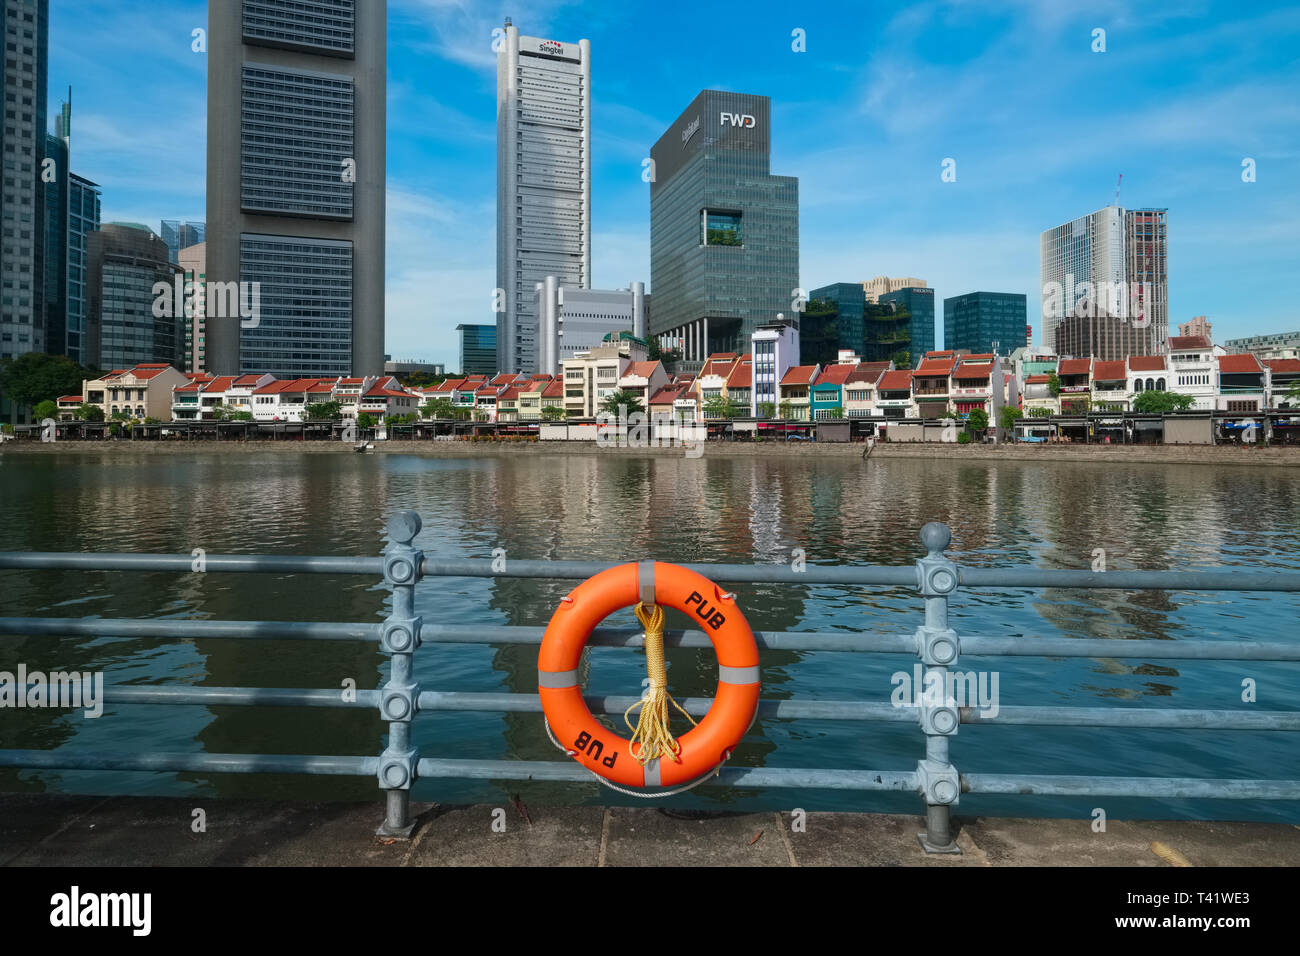 A lifesaver attached by the Public Utilities Board (PUB) to the railing along the Singapore River, at Boat Quay, Singapore; b/g: financial district - Stock Image